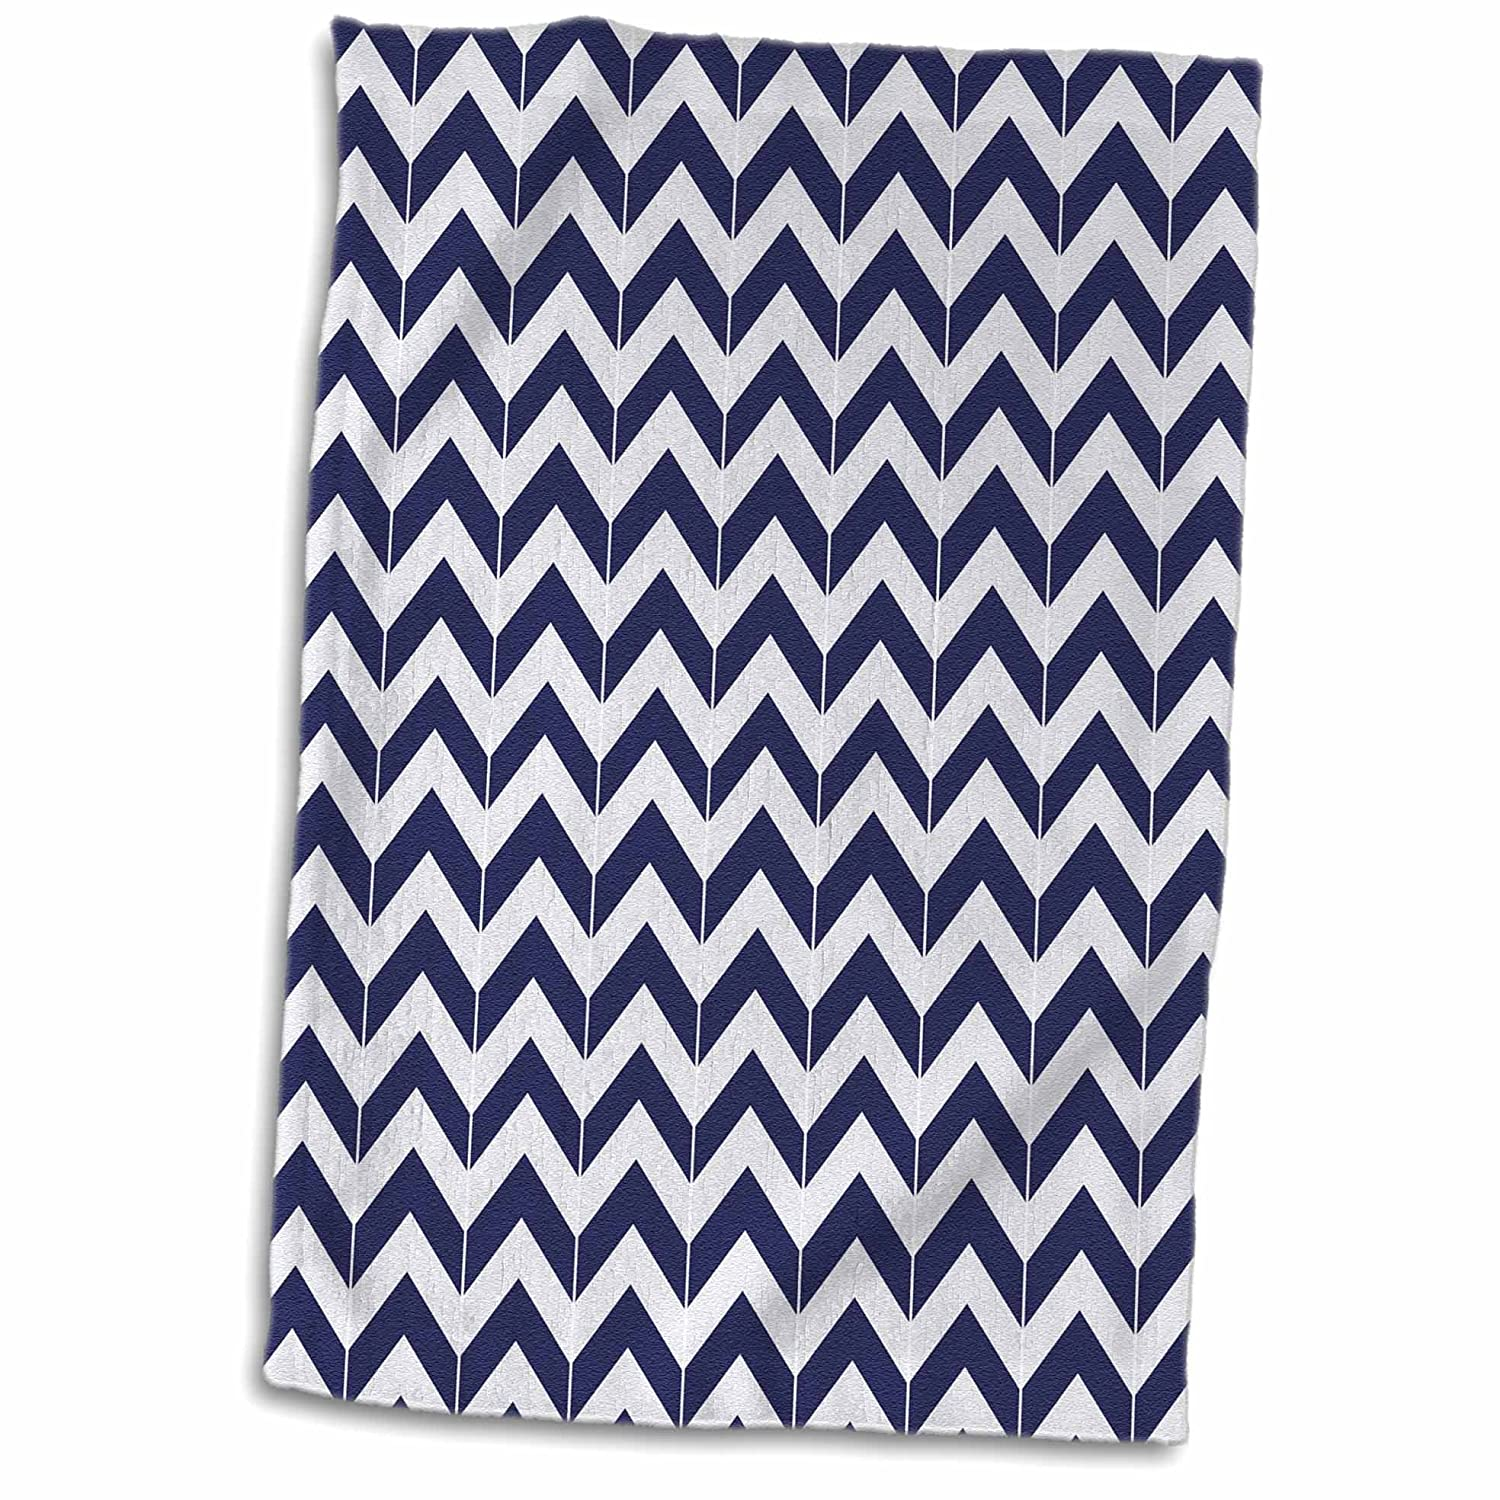 3D Rose Navy Blue and White Nautical Rope Design TWL_212475_1 Towel 15' x 22' Multicolor